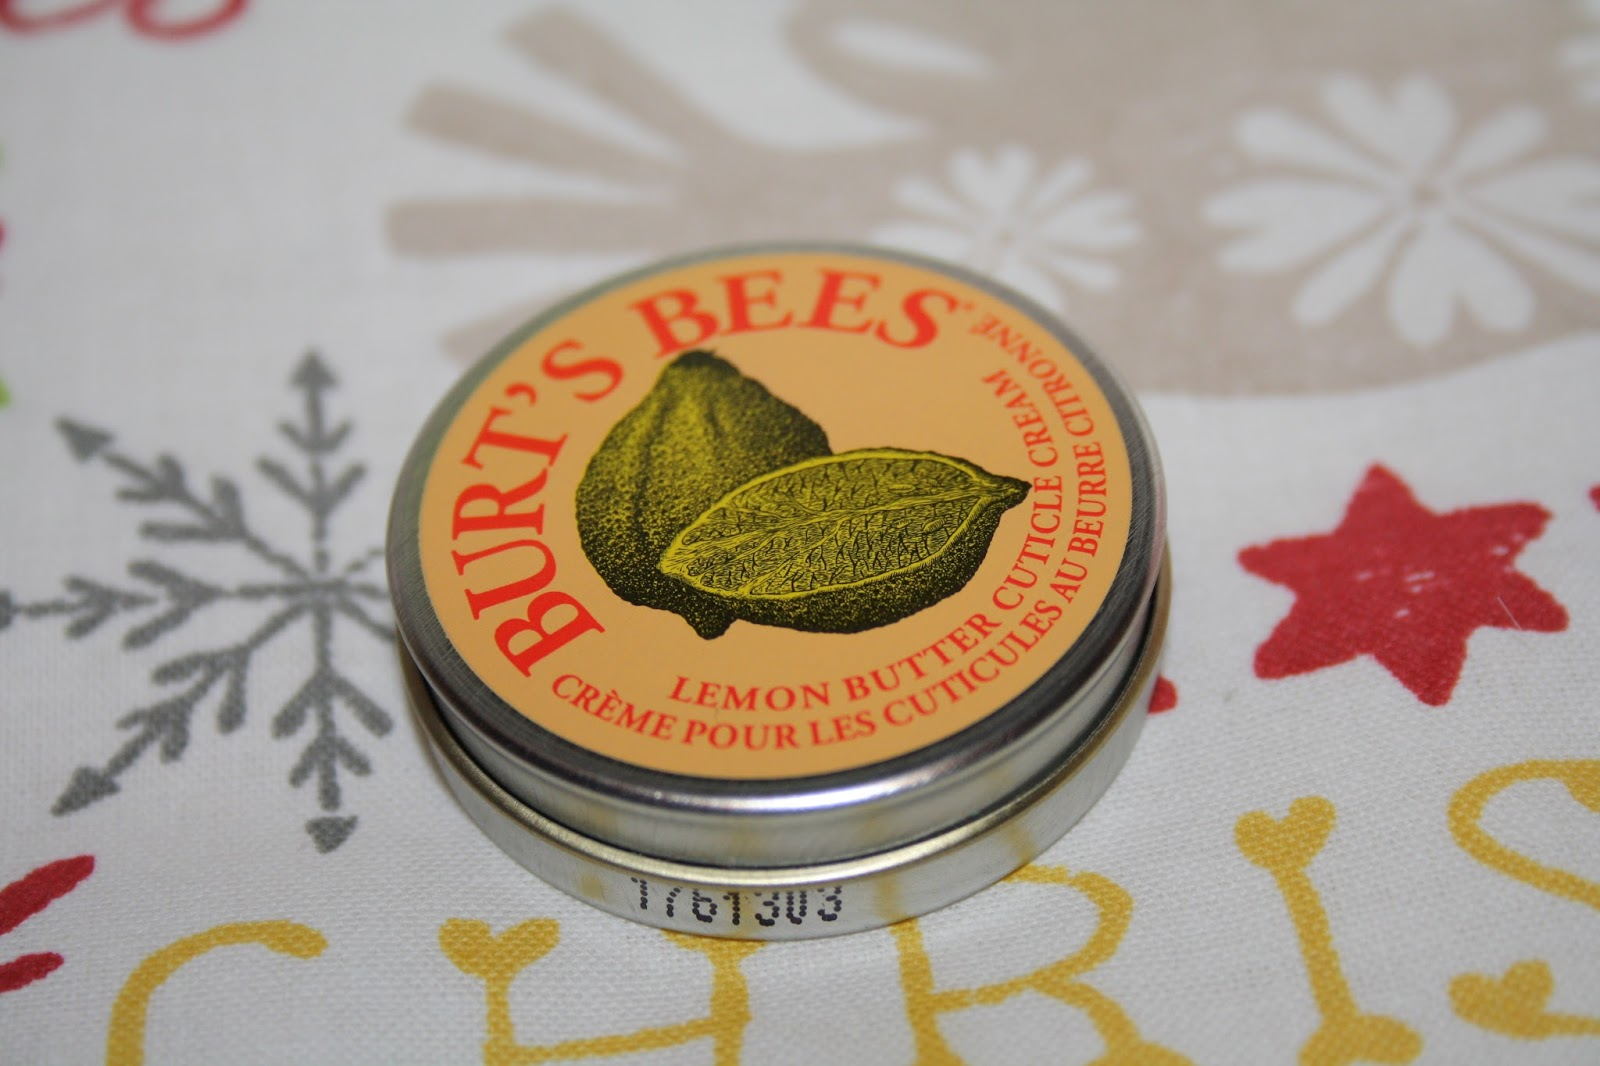 Lemon Butter Cuticle Cream